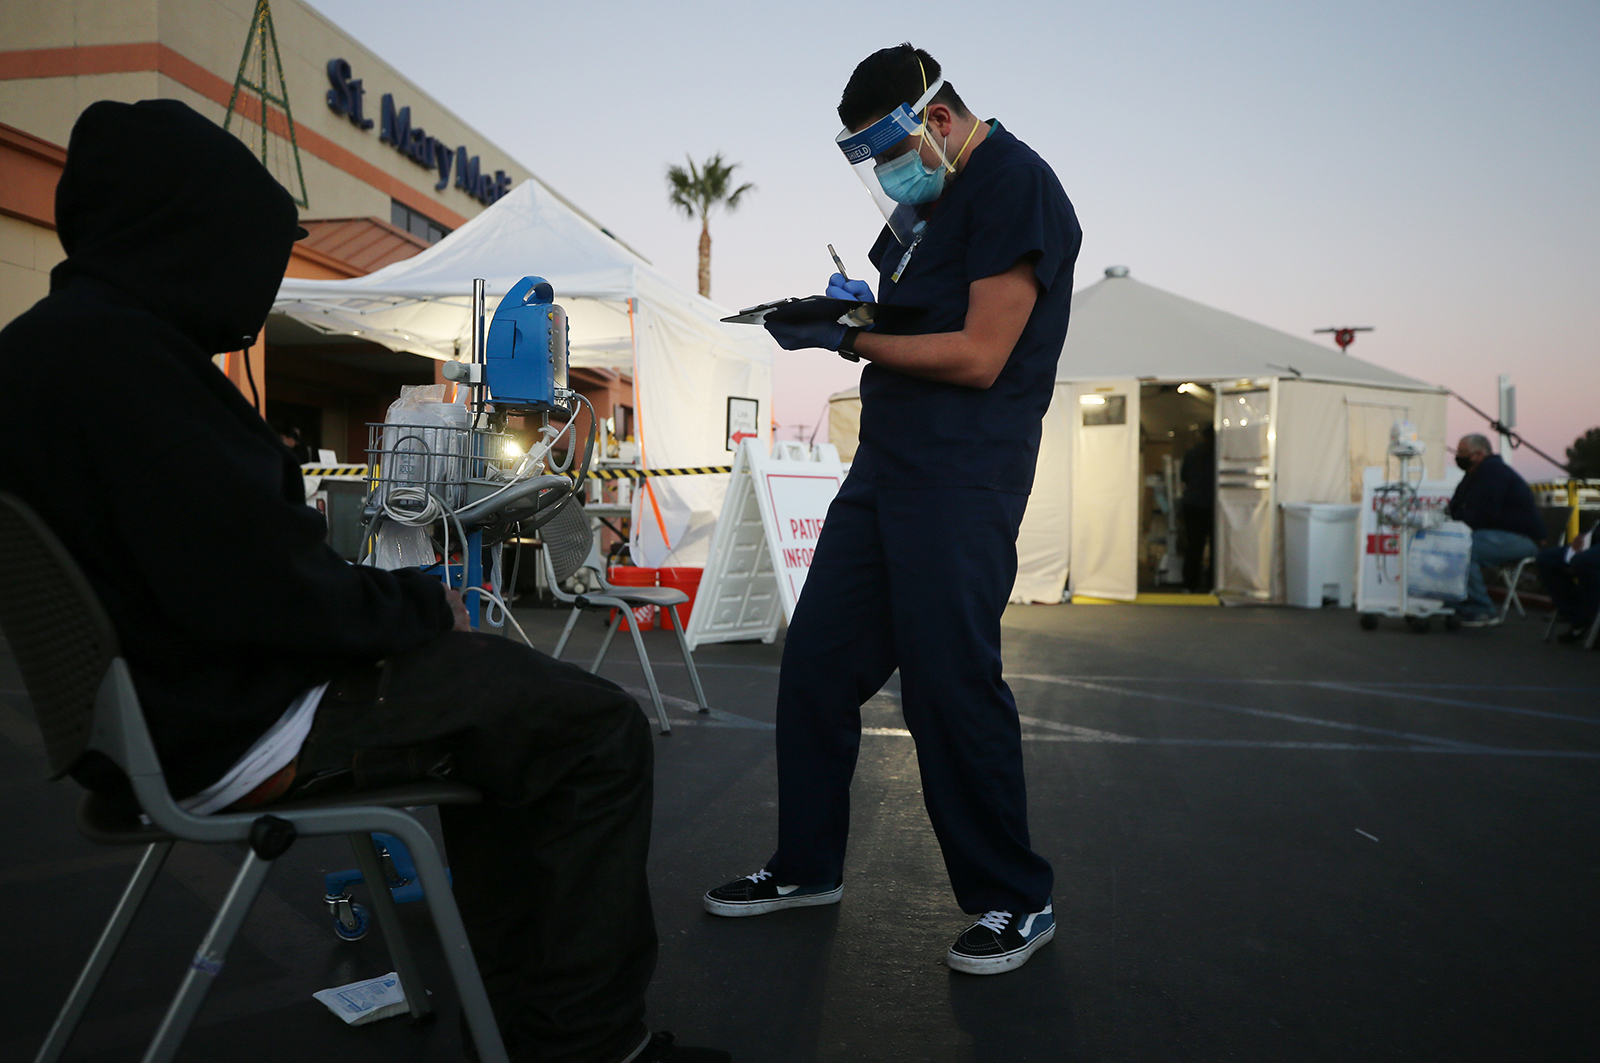 A California National Guard medic checks the vital signs of an incoming patient in front of triage tents set up outside Providence St Mary Medical Center amid a surge in Covid-19 patients in Southern California on December 18, in Apple Valley, California.